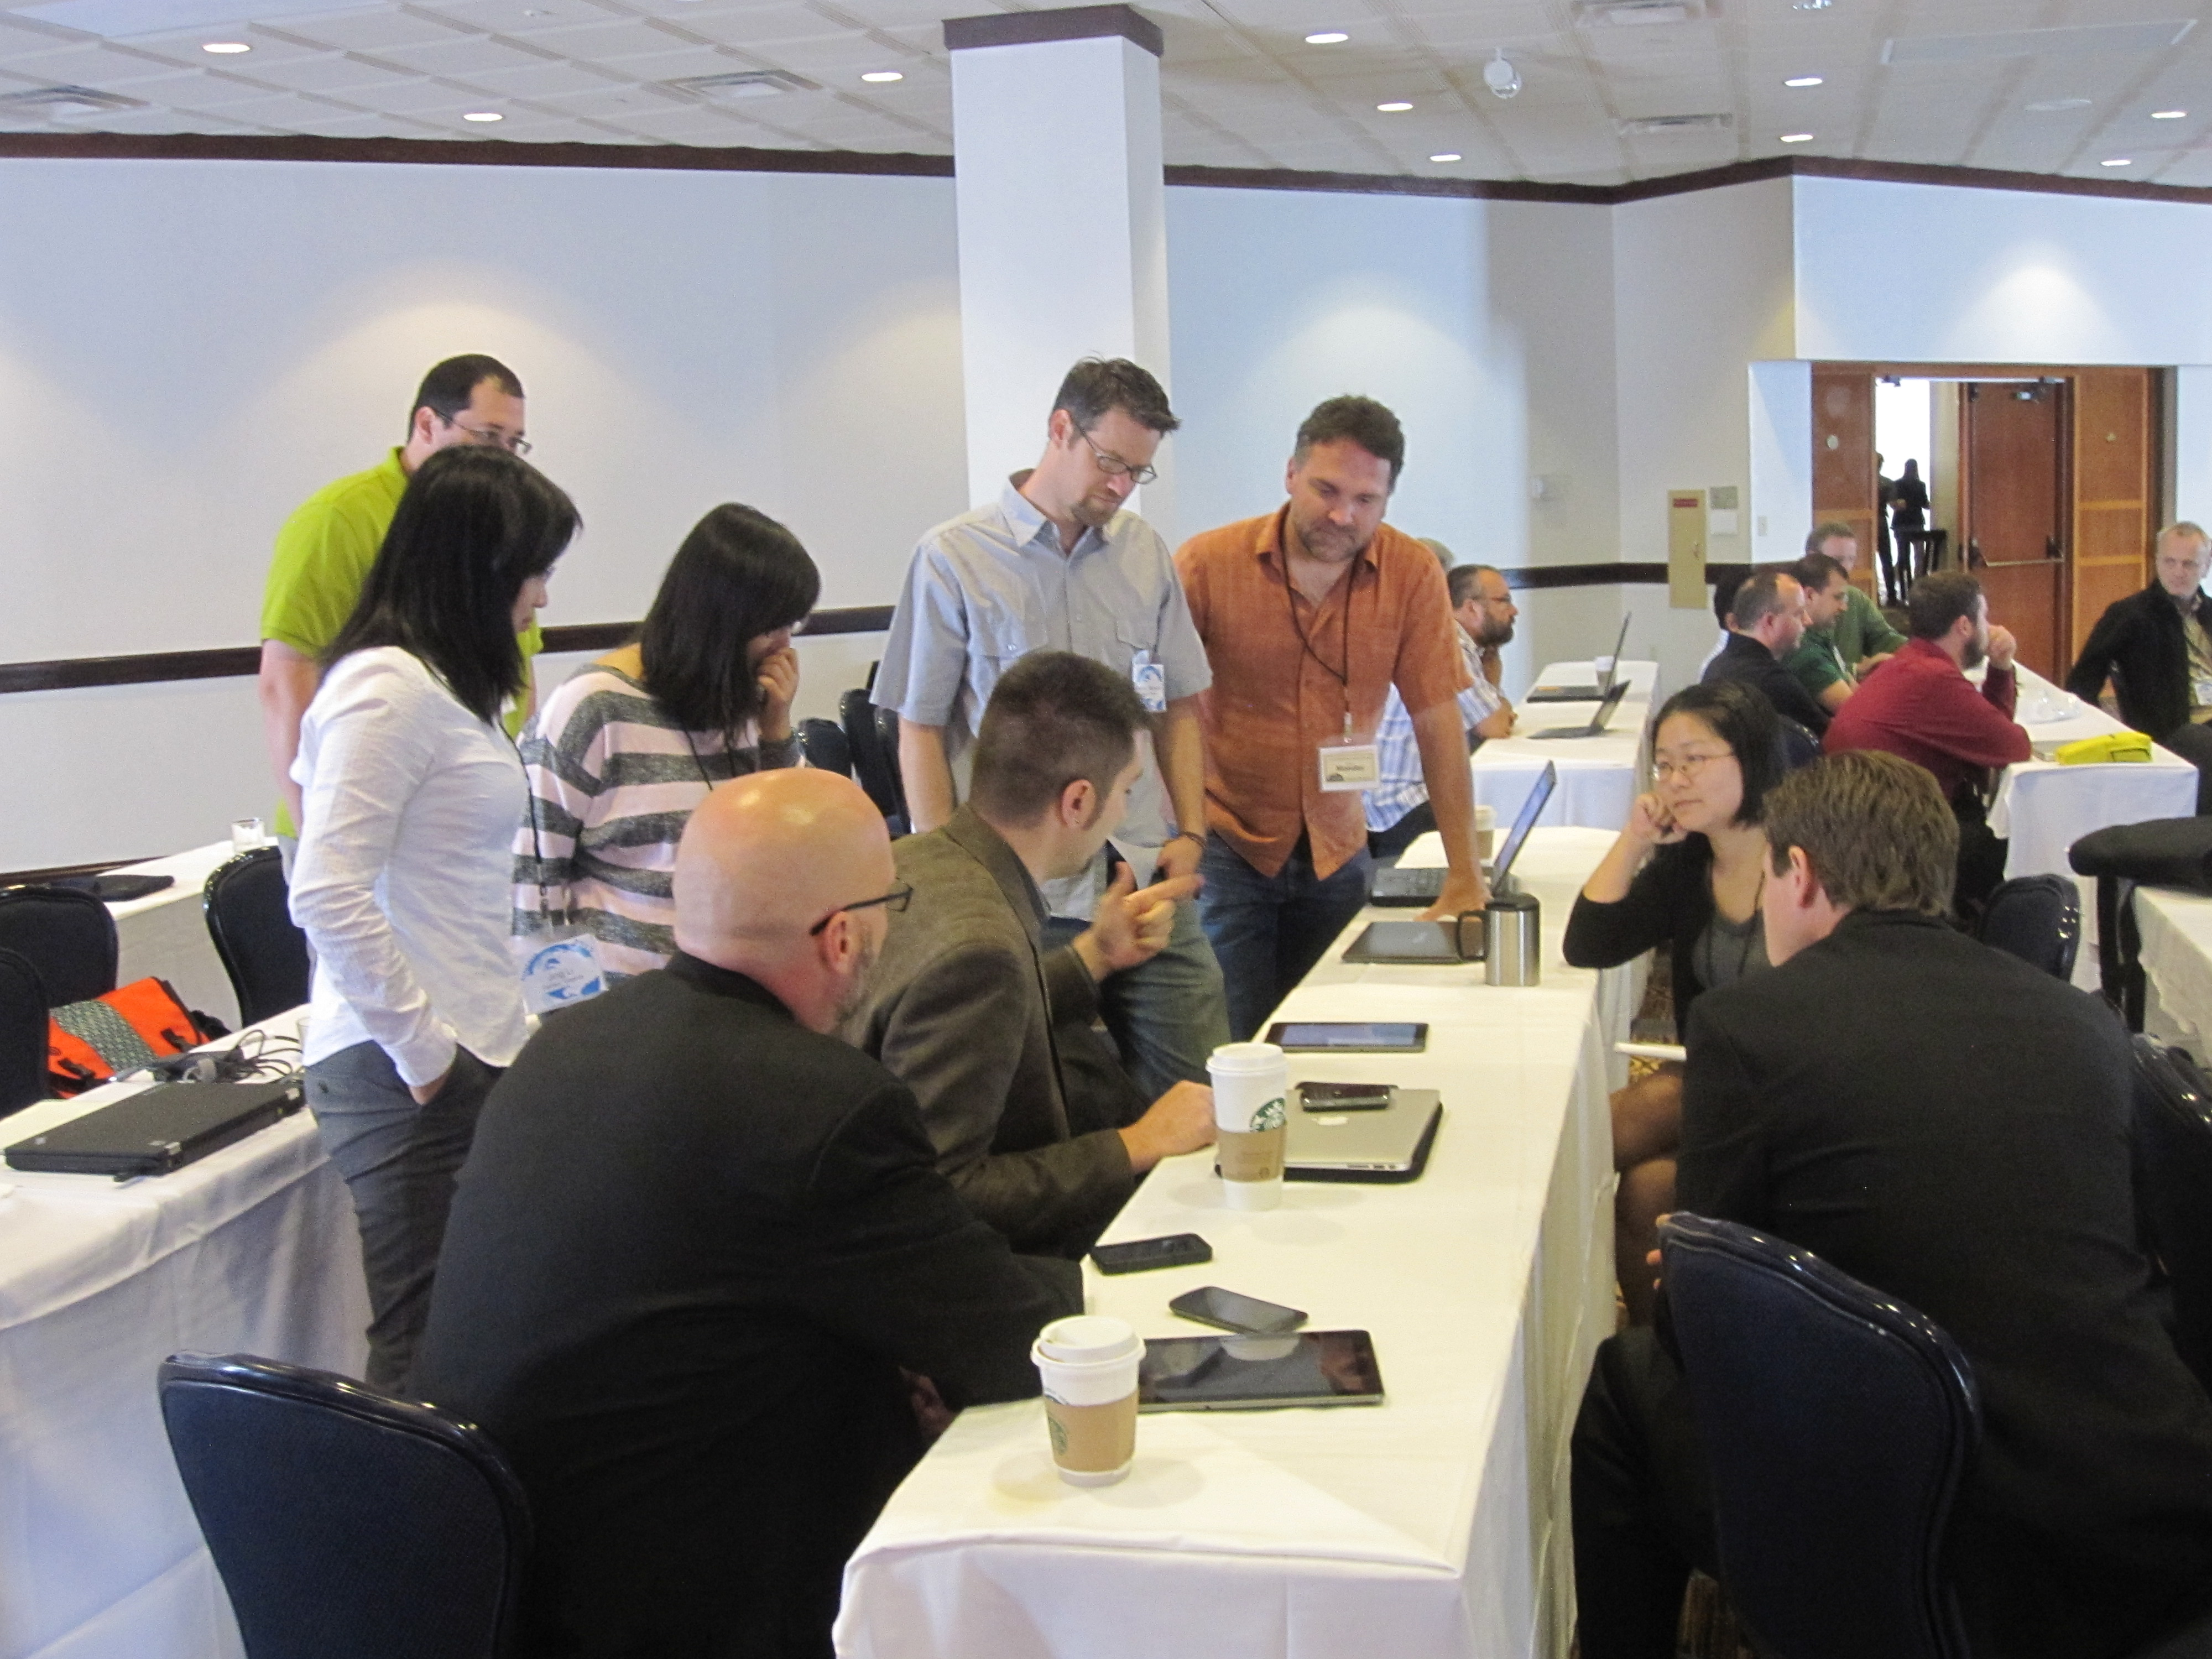 workshop summary 5 executive summary as part of the ity of san antonio's smart ity initiative, the office of innovation hosted a smart ities readiness workshop on march 21, 2017.